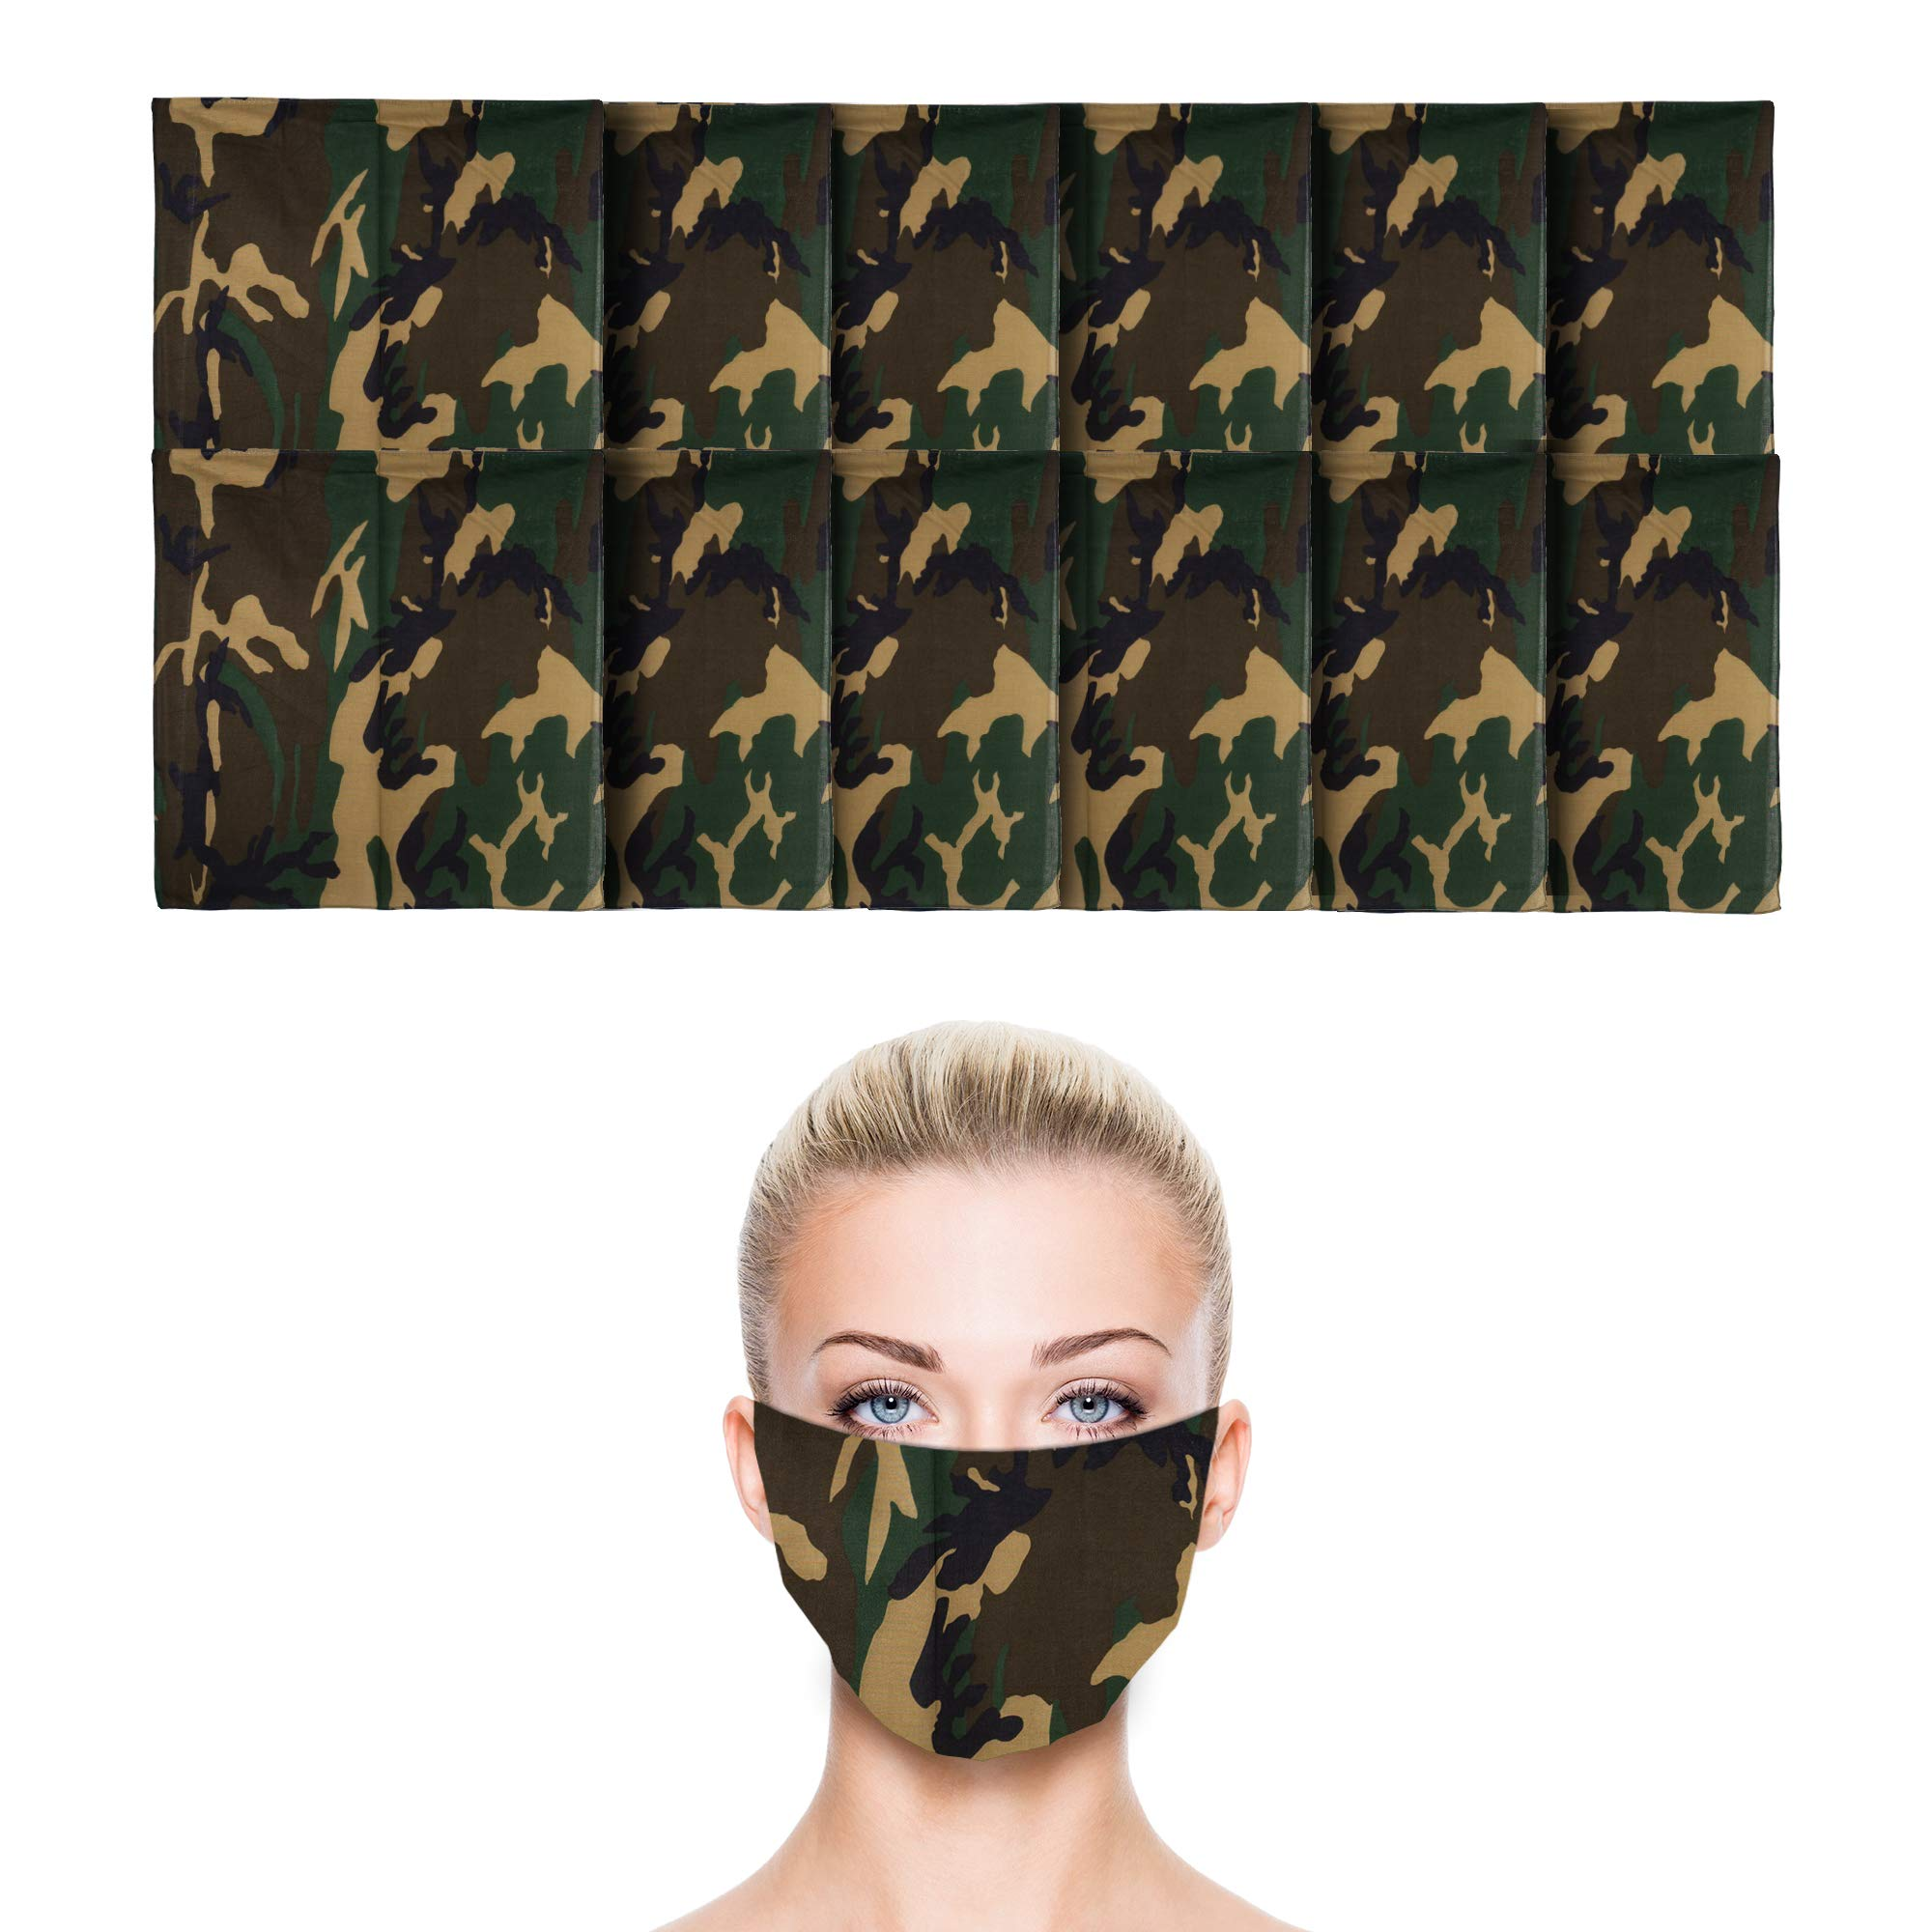 12 Pack Camo Green Bandana   100% Cotton   Face Mask for Dust & Sun Protection   Nose Cover